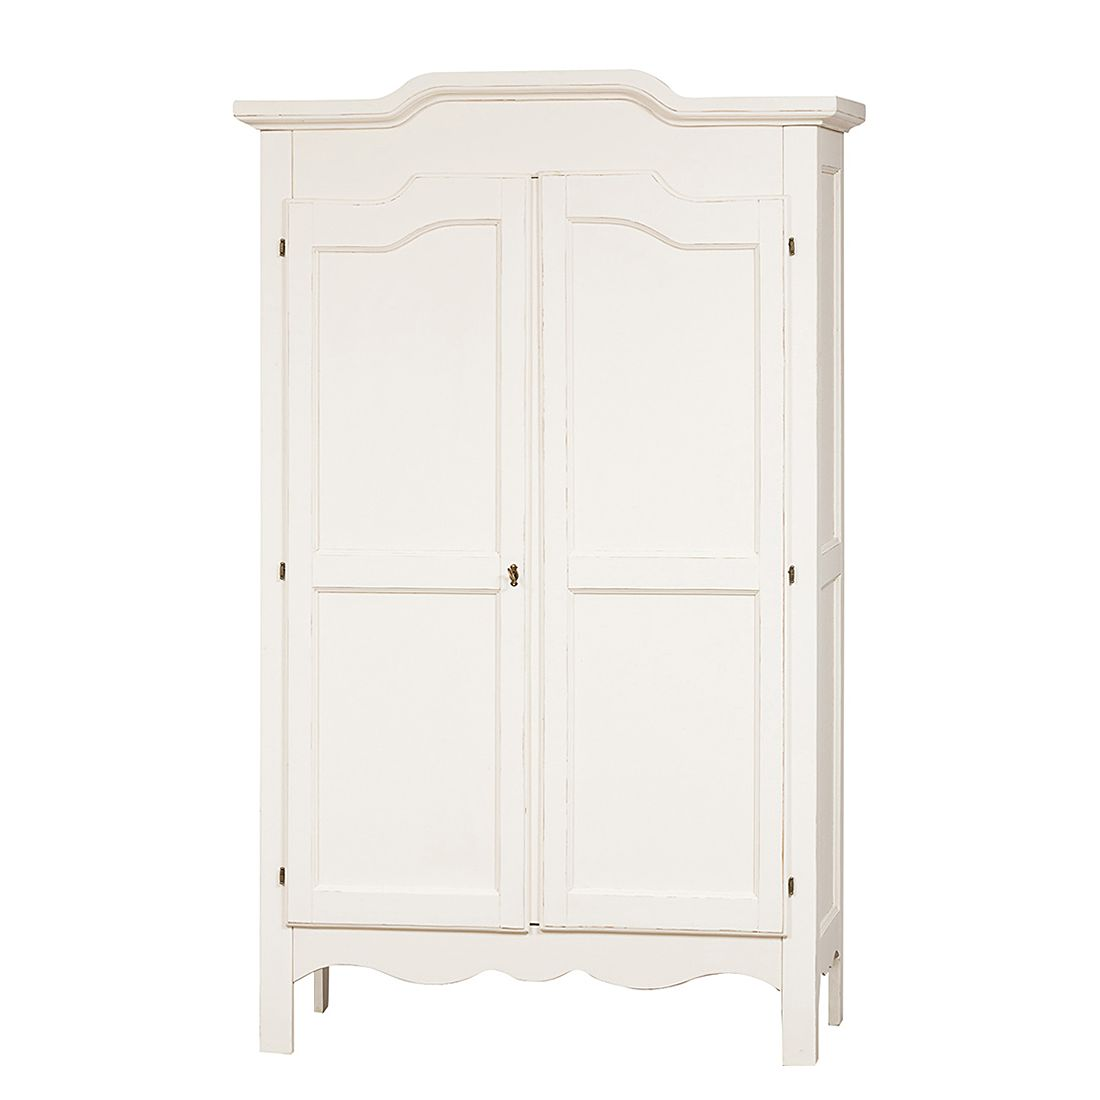 armoire v tements giocoso i tilleul massif blanc luissant le fait main. Black Bedroom Furniture Sets. Home Design Ideas